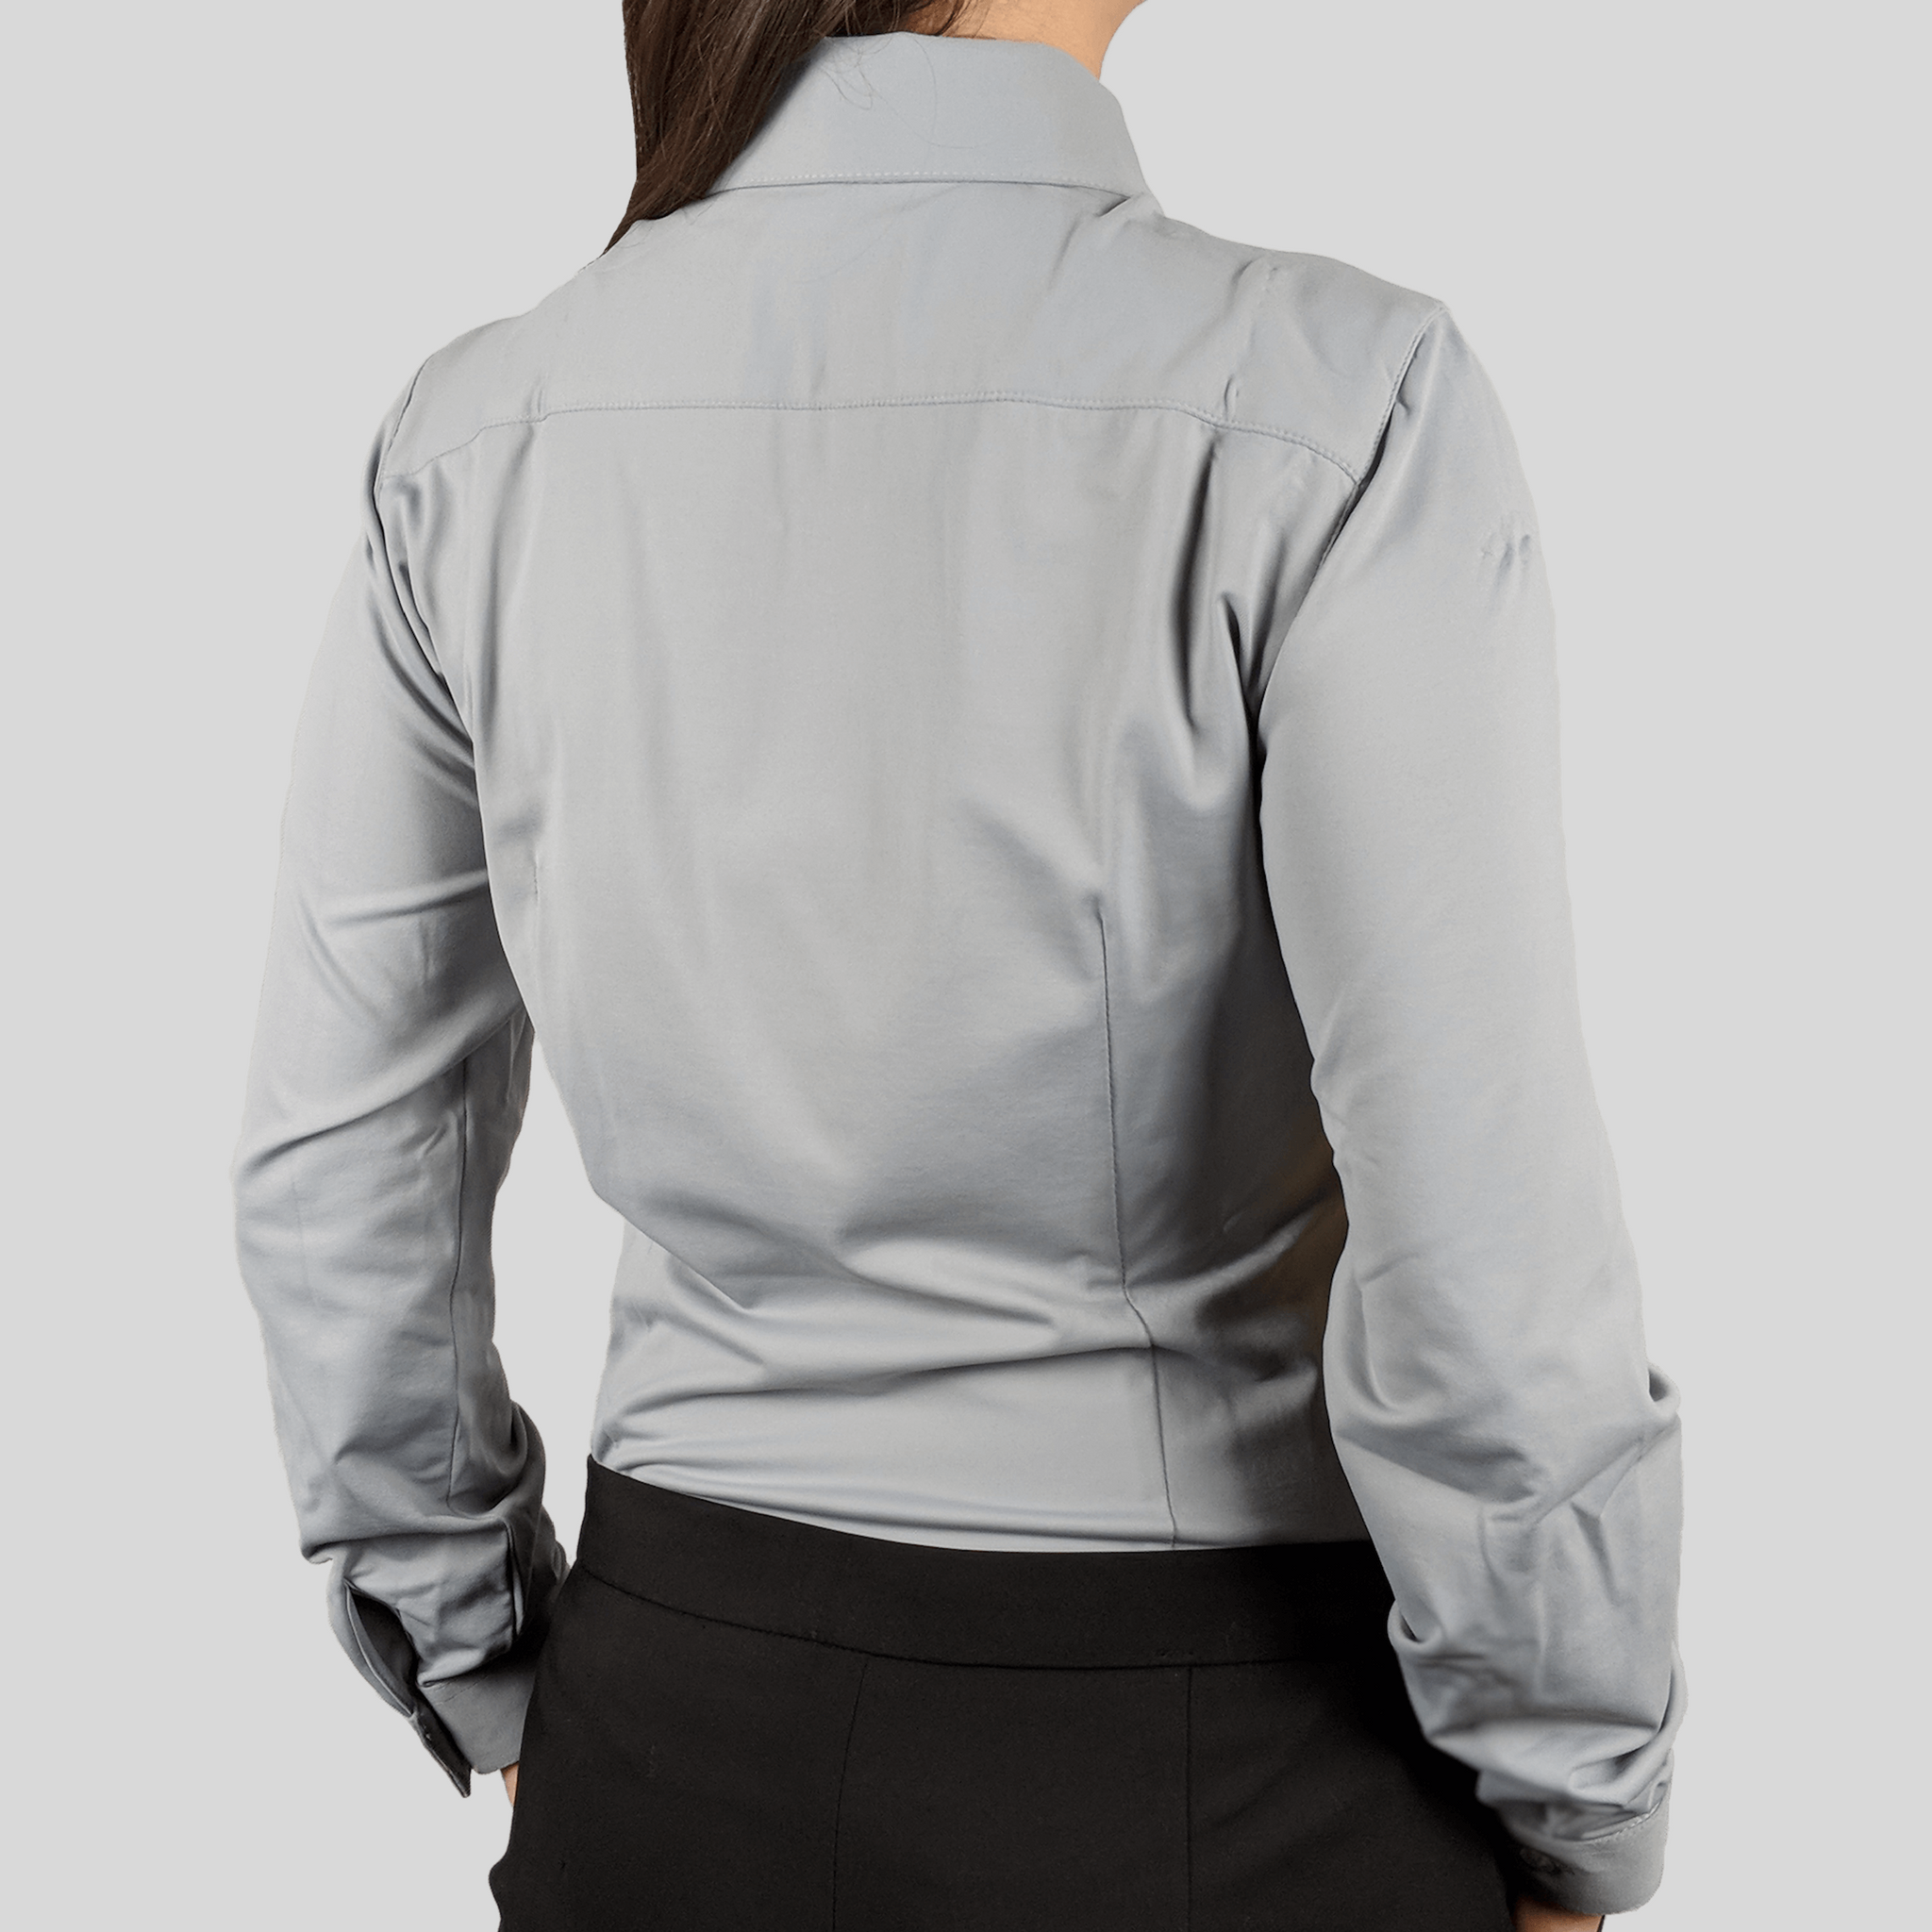 Origins Grey for women dress shirt from advanced fabrics by DULO